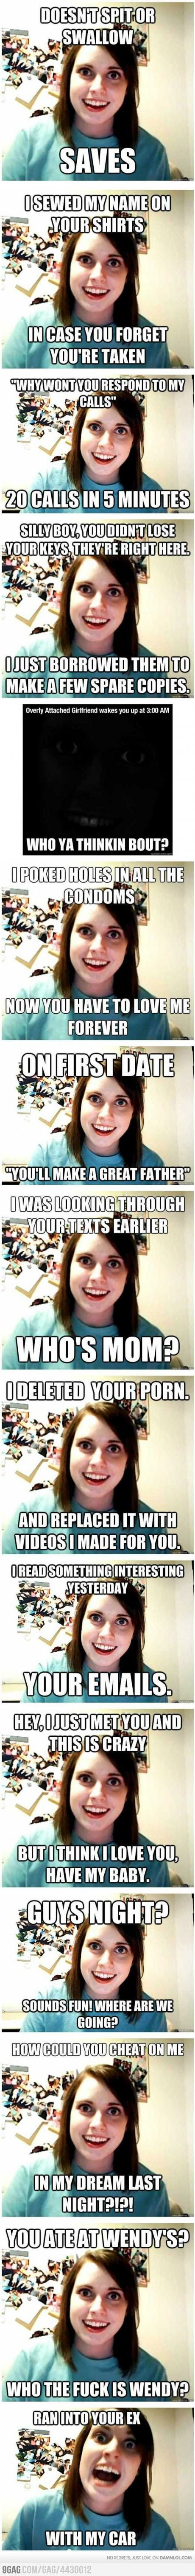 Overly Attached Girlfriend Compilation!  This is so fucking true!  Fuckin crazy bitches!!!!!